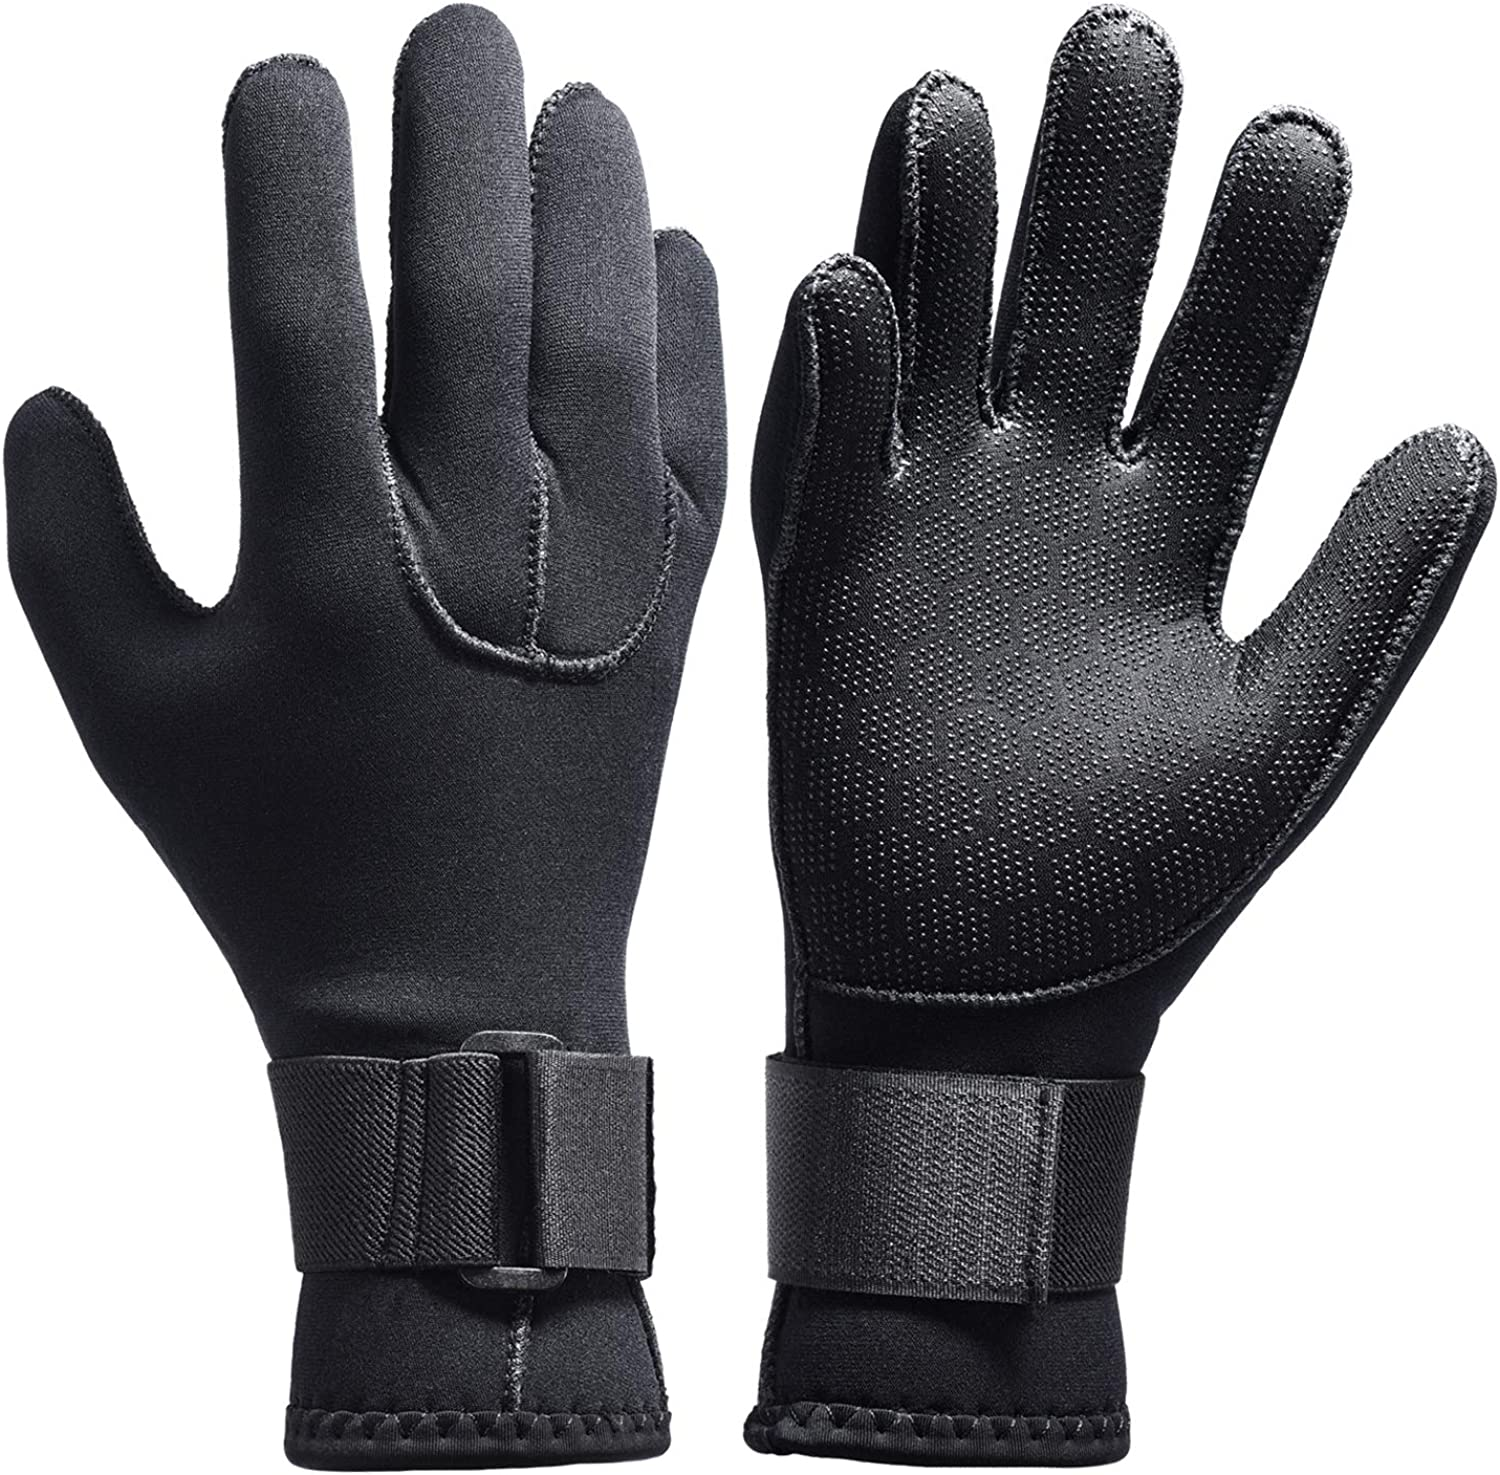 3mm - Black, M Pond and Aquarium Maintenance Boating Cleaning gutters with Elastic Wrist Band Dark Lightning Scuba Diving Gloves for Men and Women 3mm Neoprene for All Water Sports